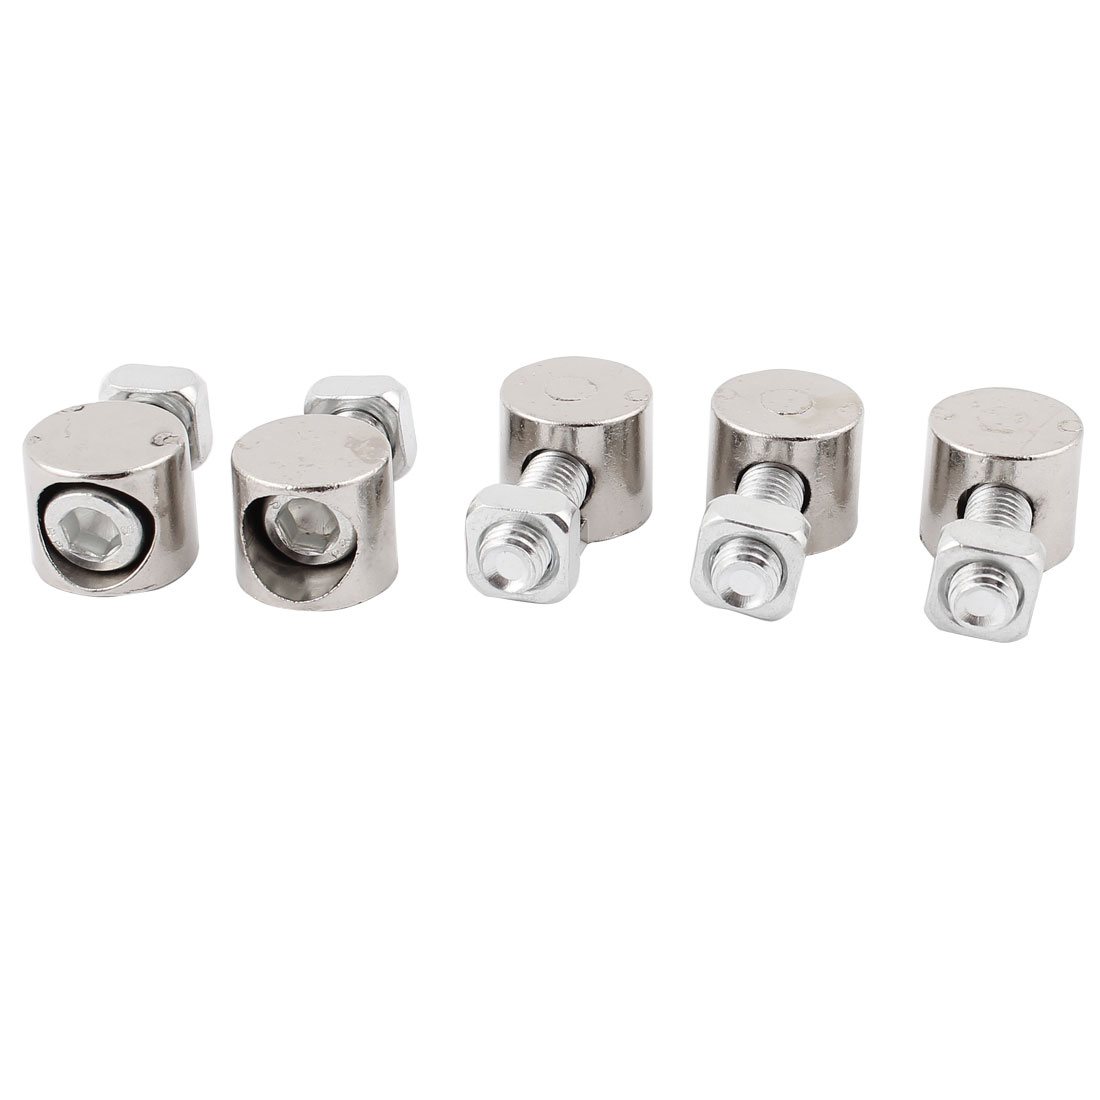 5Pcs Profile Inner Connector T Slot Anchor Fastener for 8mm Thread Dia